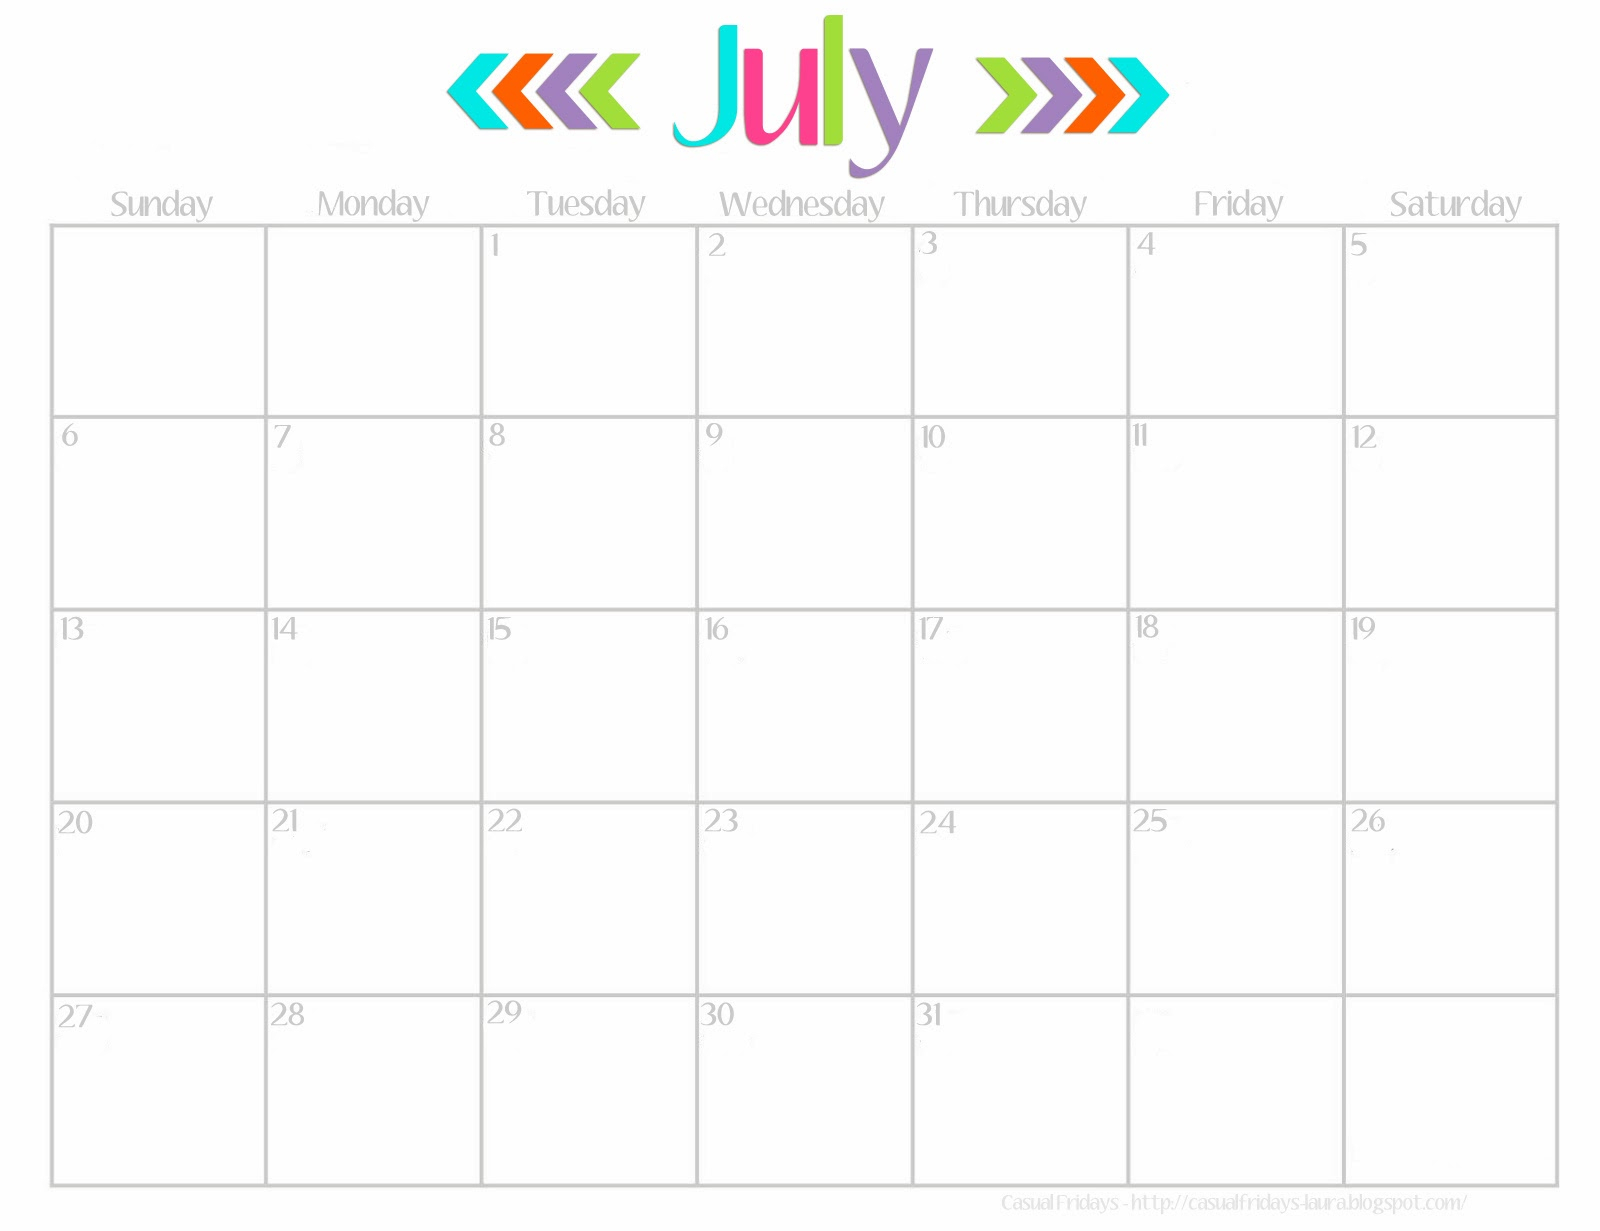 July Blank Calendar Template 2016 - Radiodignidad pertaining to Cute Calendar Template August